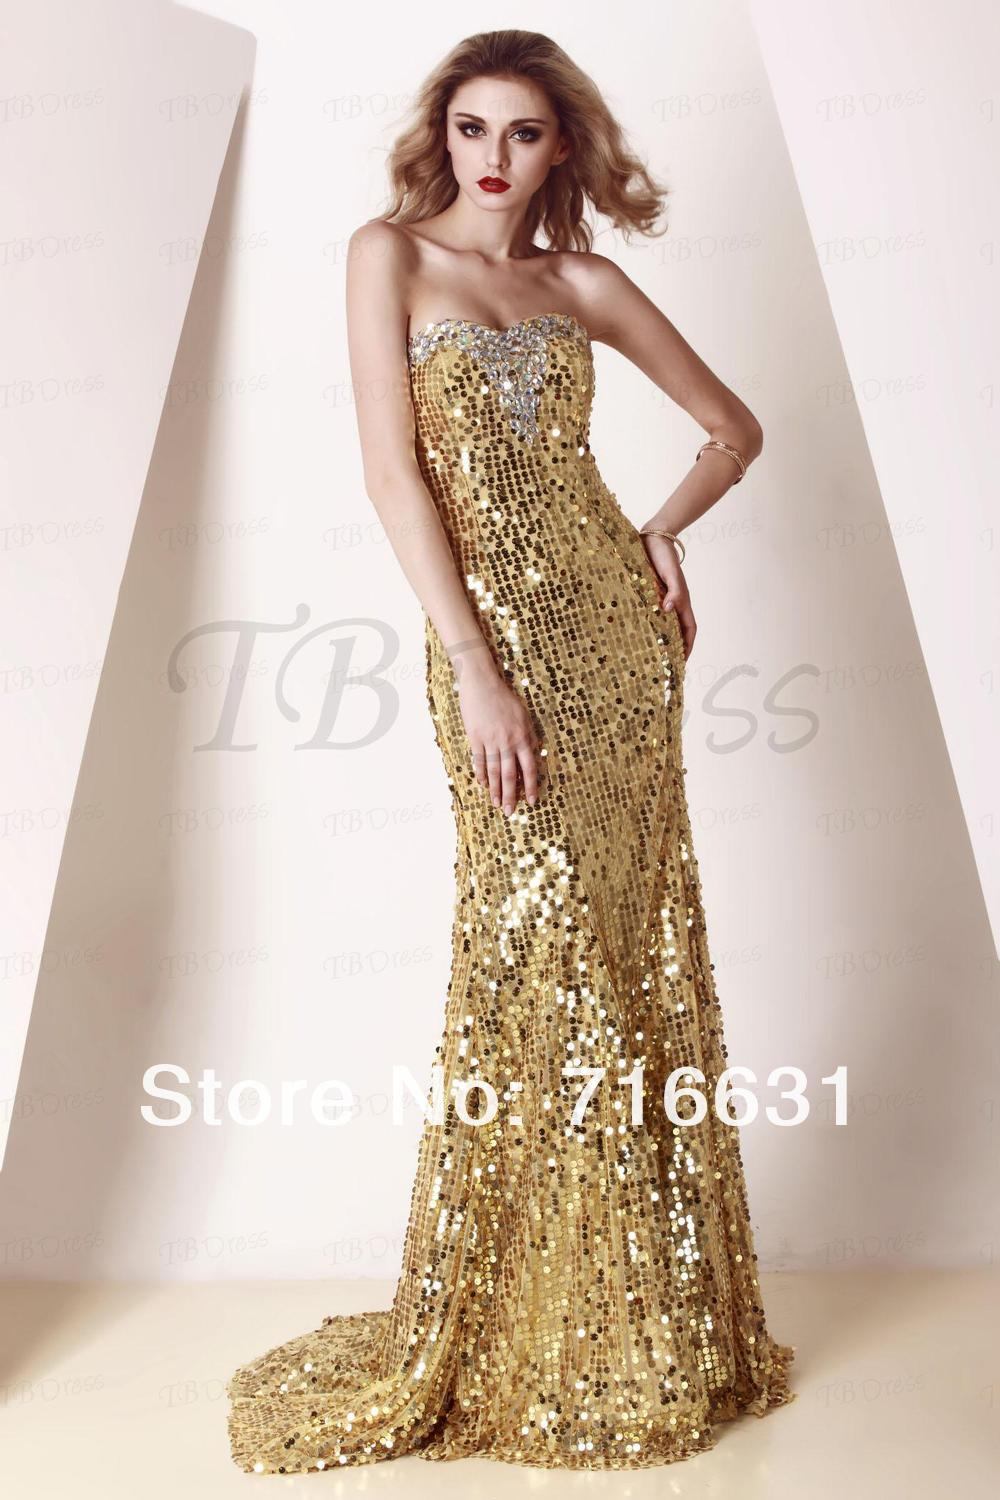 Sequined Gowns Affordable And Fashion Outlet Review – Always Fashion